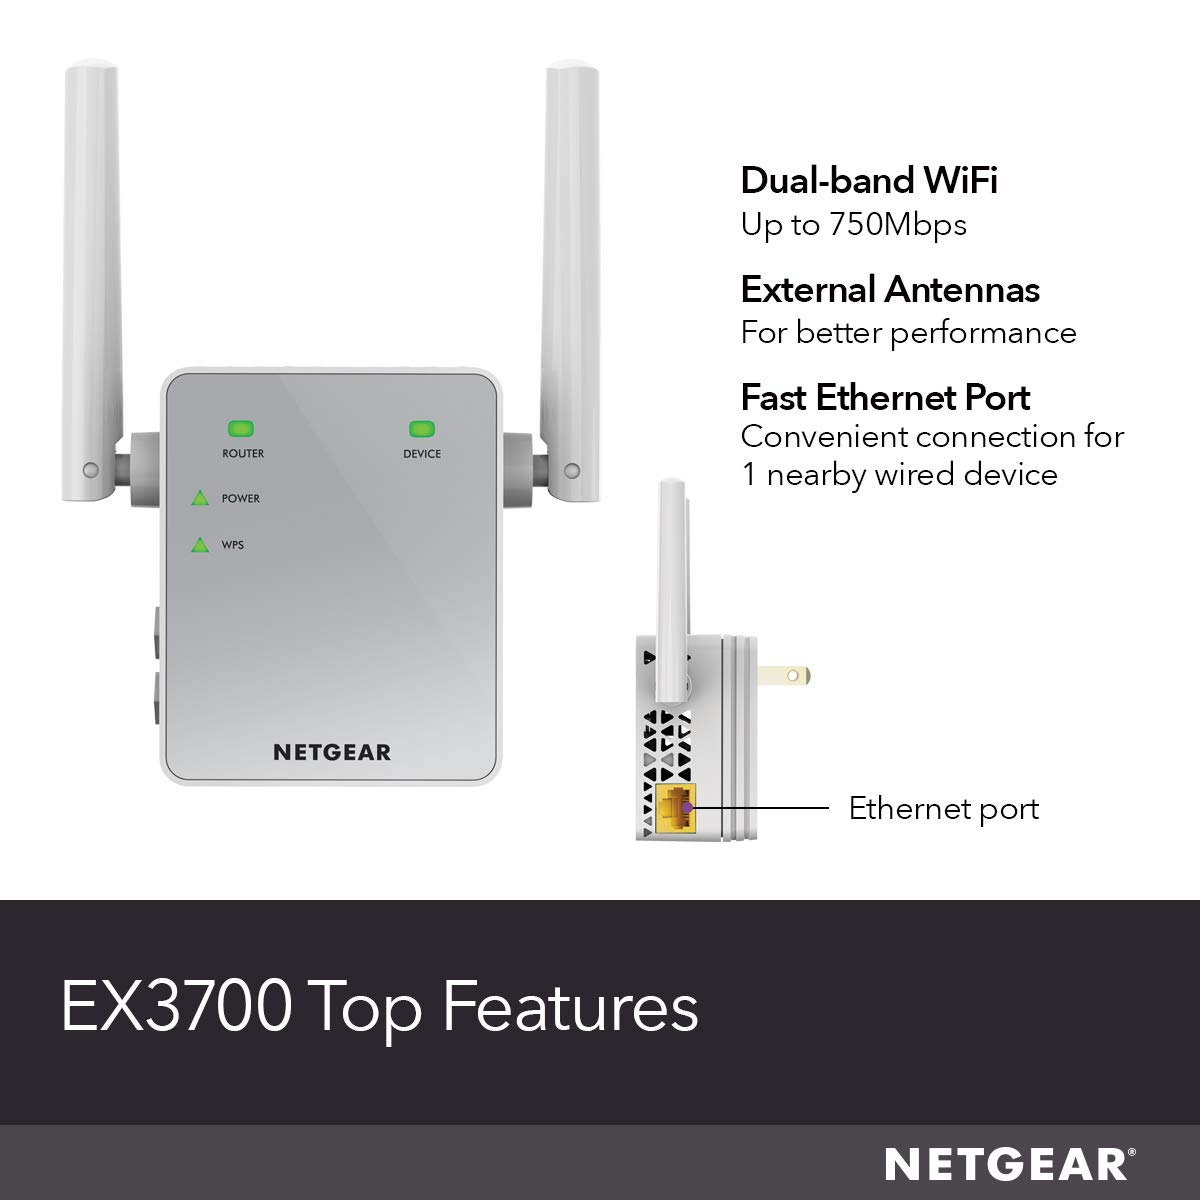 NETGEAR Wi-Fi Range Extender EX3700 - Coverage up to 1000 sq ft  and 15  devices with AC750 Dual Band Wireless Signal Booster & Repeater (up to  750Mbps